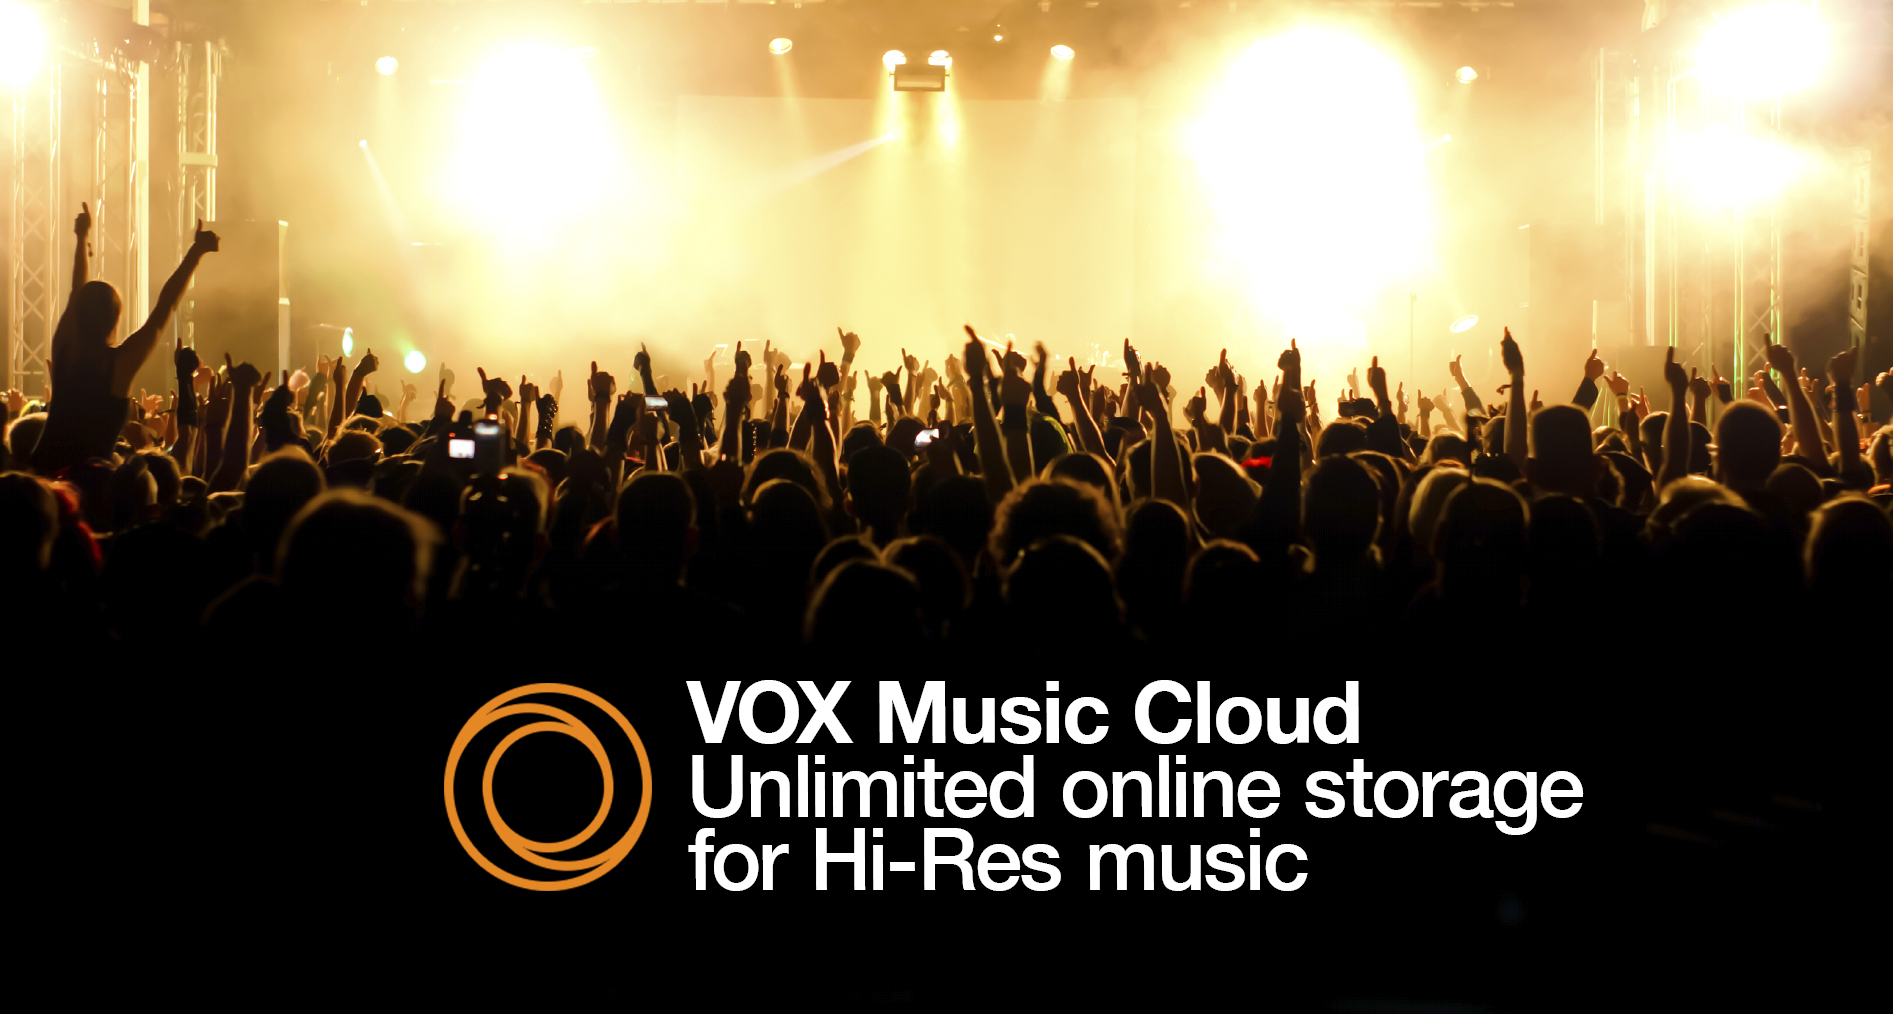 VOX Music Cloud logo